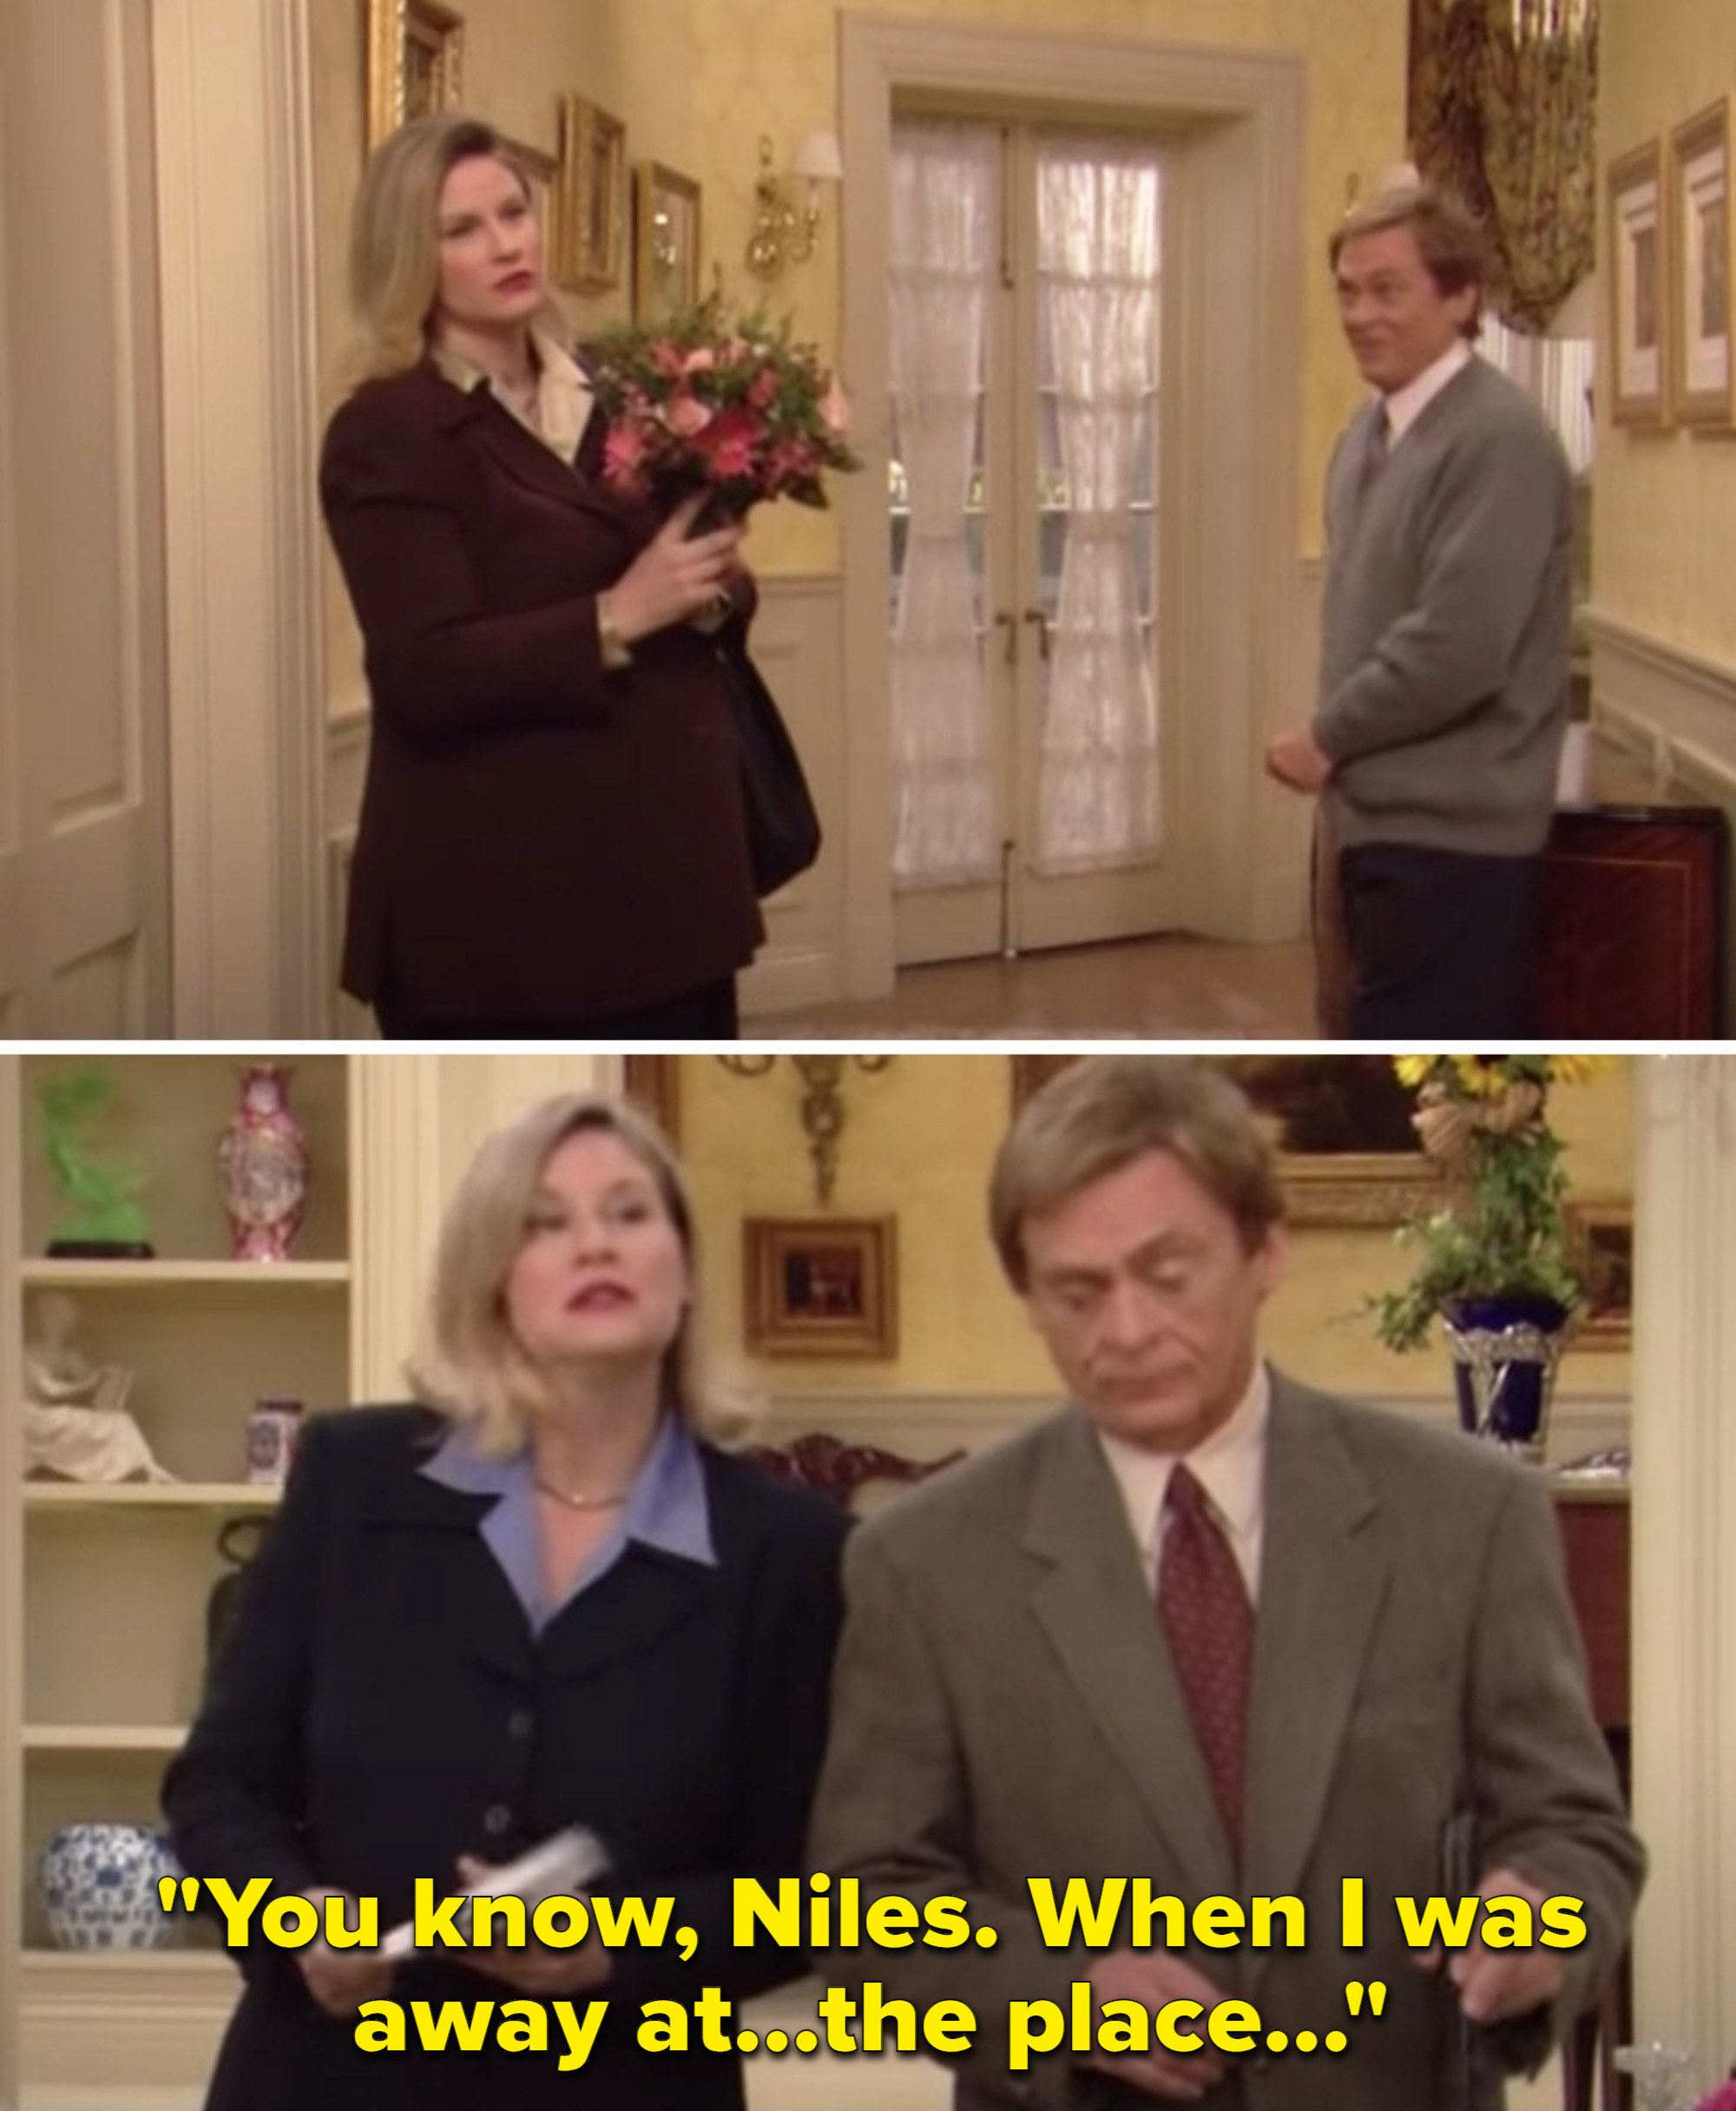 """C.C. holding flowers in front of her stomach, and C.C. saying, """"You know, Niles. When I was away at...the place..."""""""